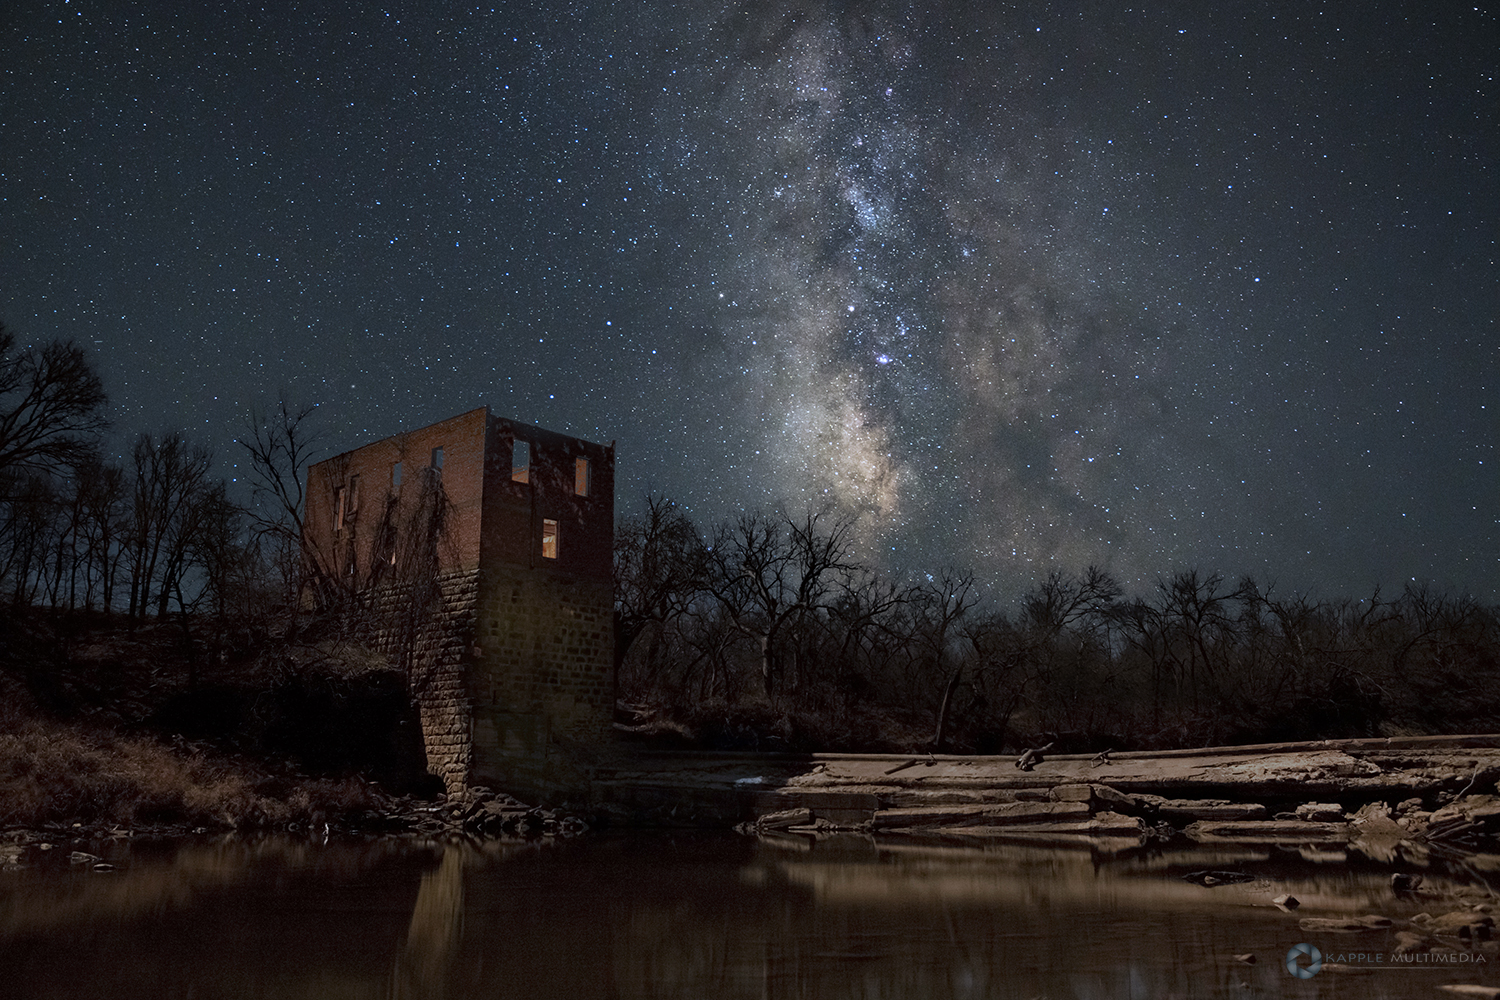 Ruins of an old grist mill lit by moonlight with stars in west Texas